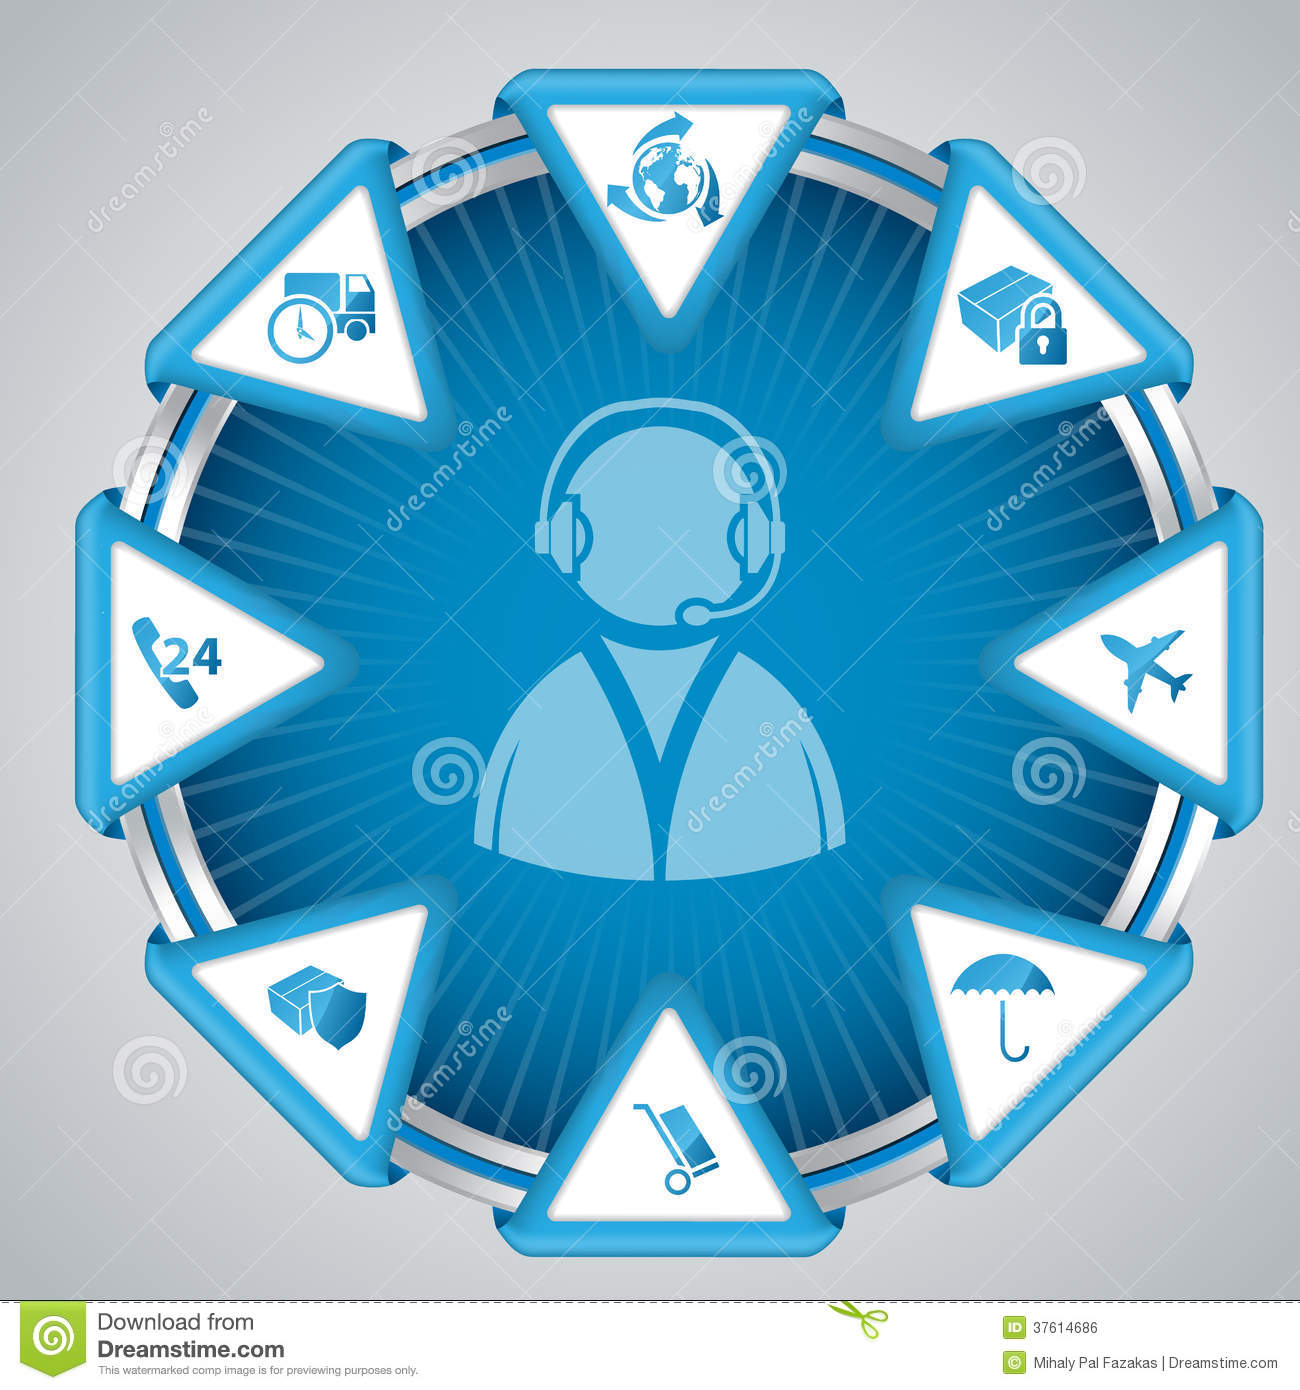 Infographic Design With Call Center Symbol Royalty Free Stock Image ...